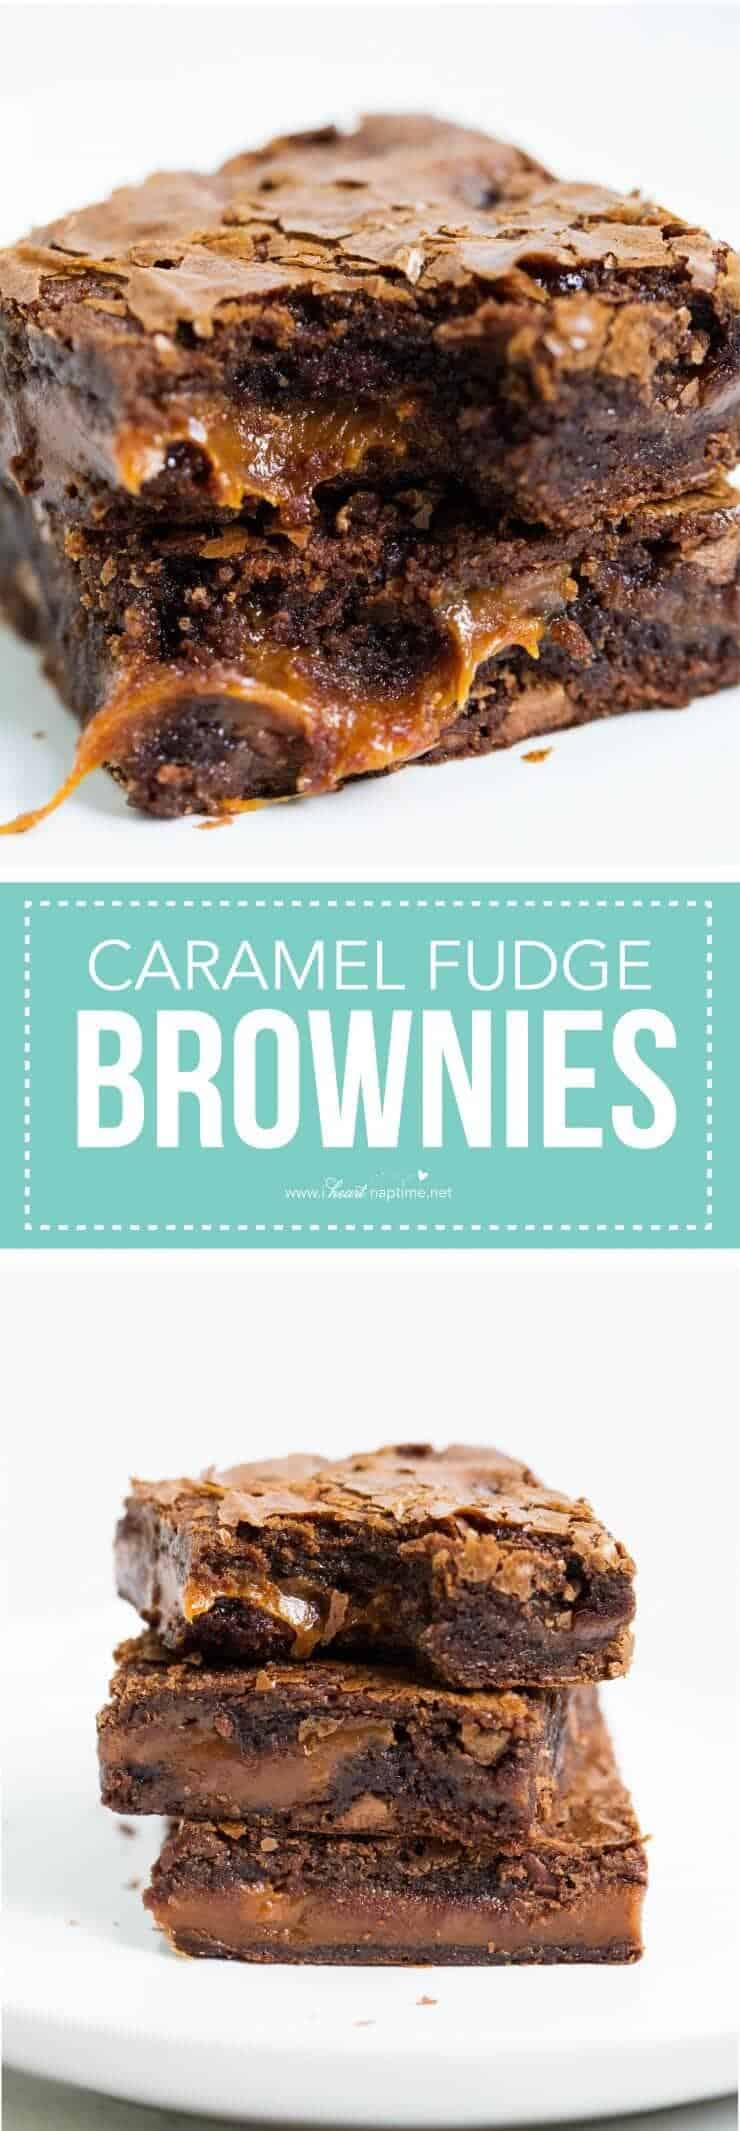 Chocolate fudge caramel brownies that are easy to make, rich, chewy and simply amazing. You are going to love these!